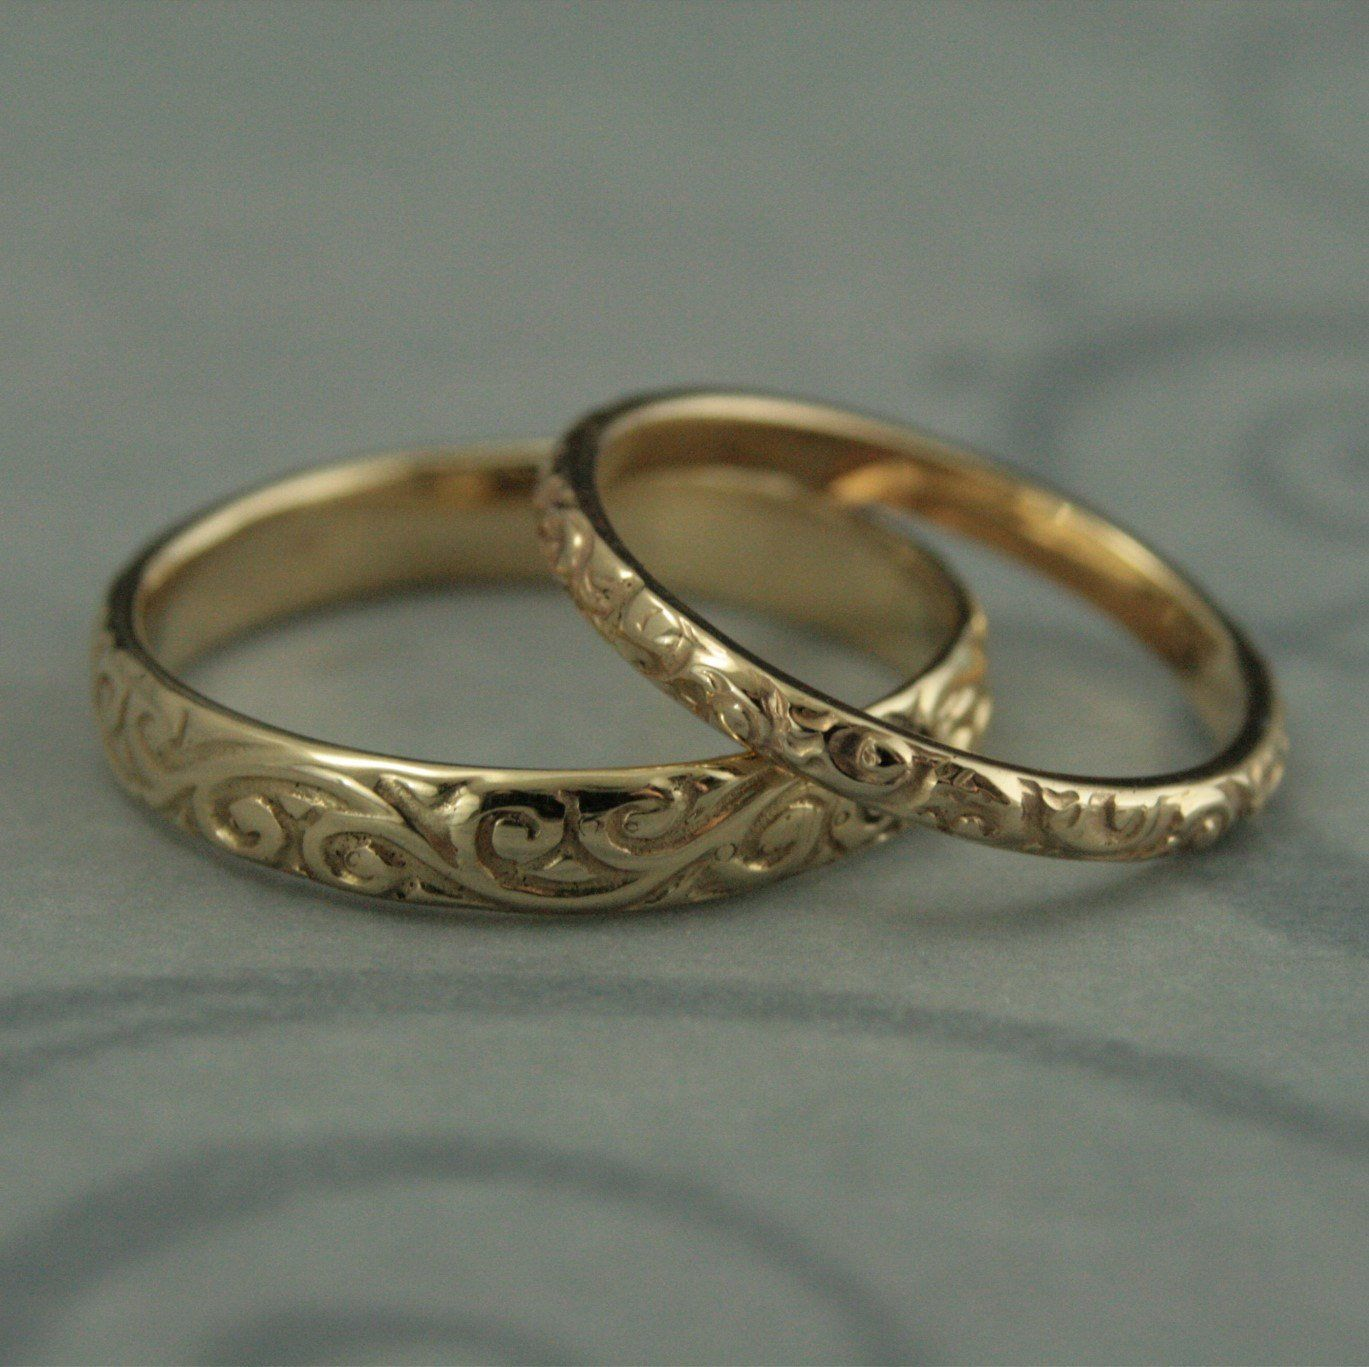 Patterned wedding band setvintage style wedding ringshis and hers